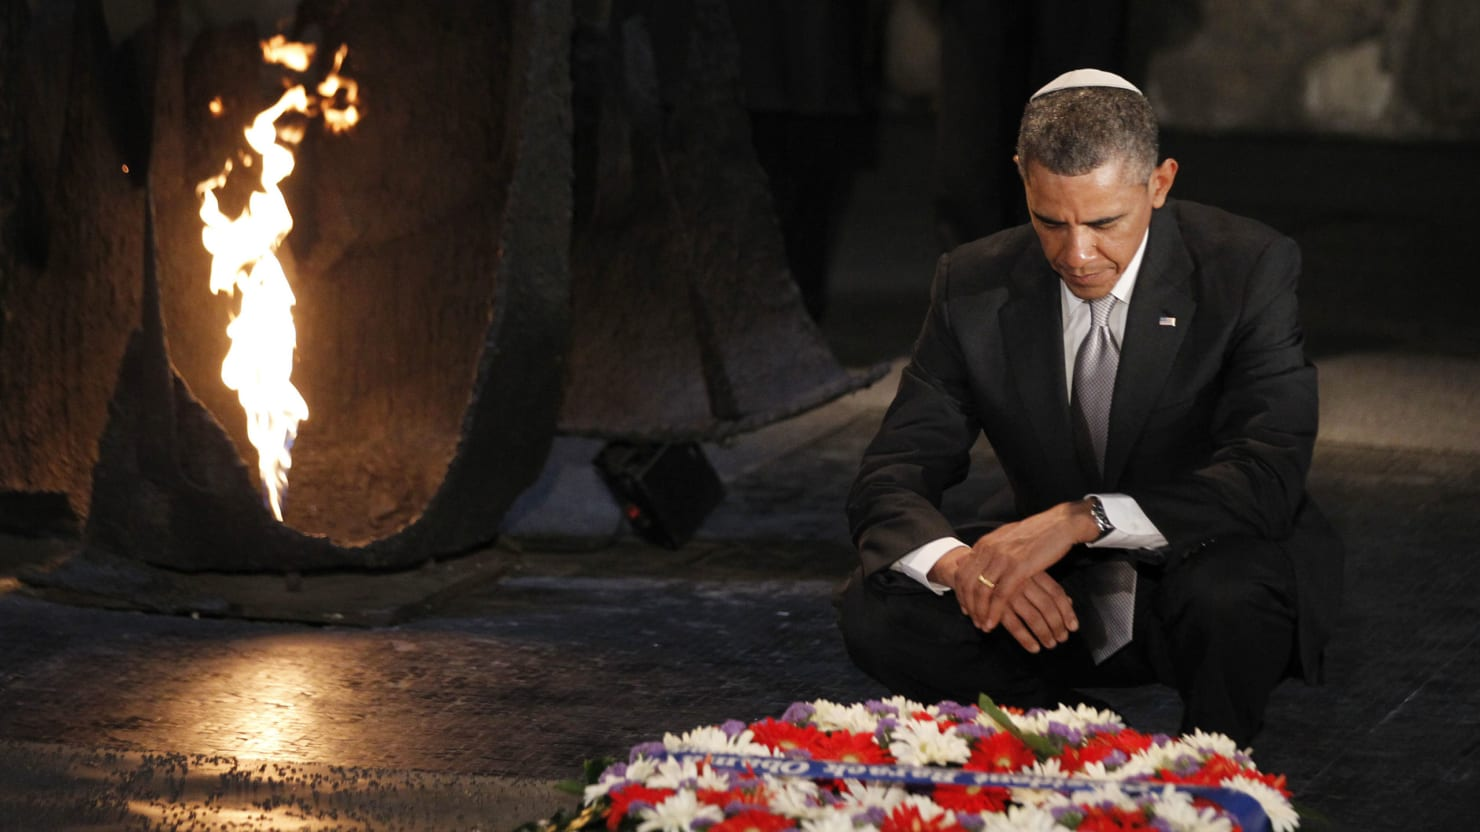 President Obama Visits Israel's Holocaust Memorial Before Heading To Jordan On Final Day In Middle East